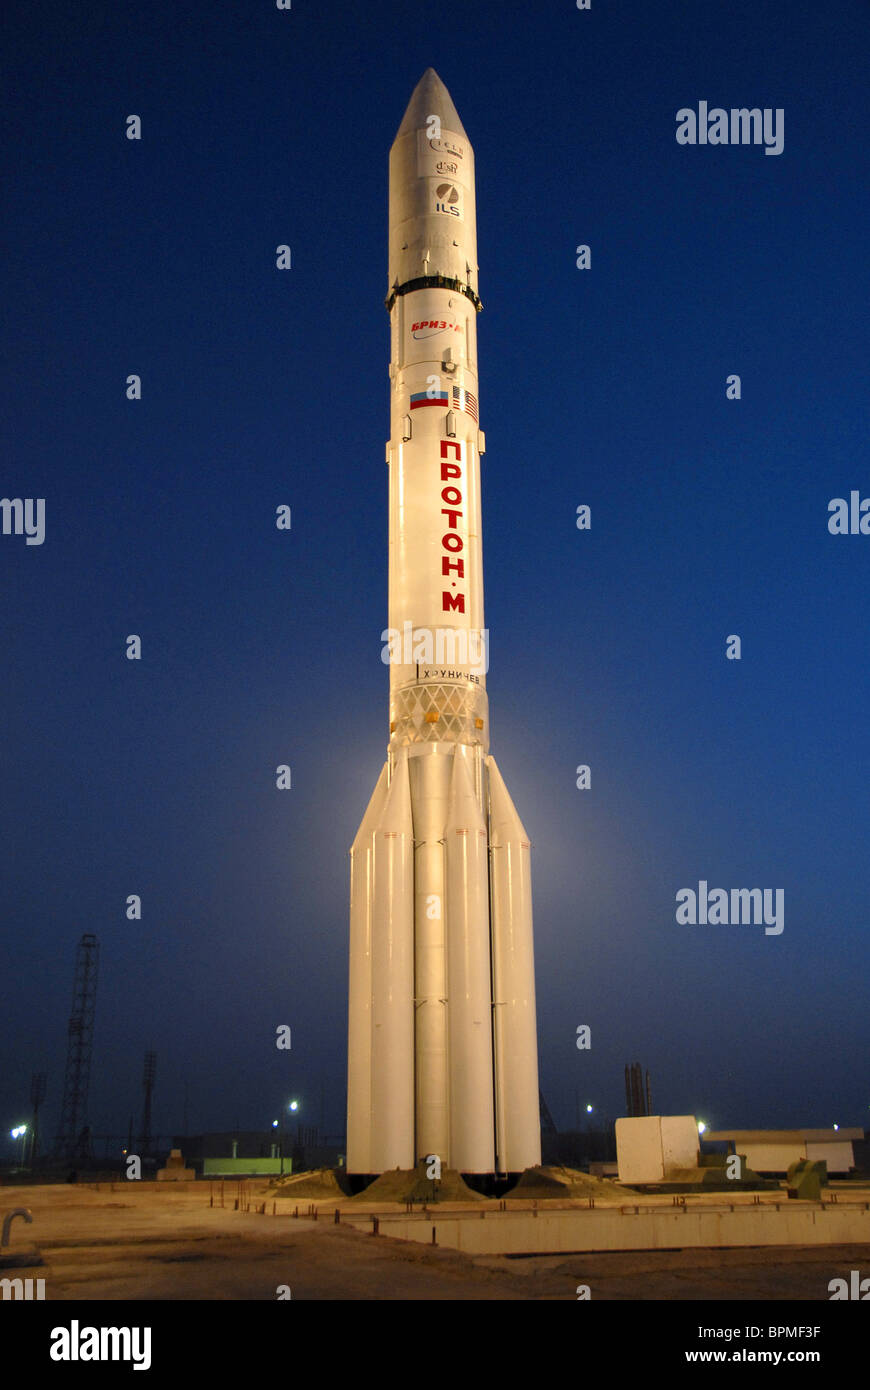 Proton-M carrying Canadian telecommunications satellite Ciel-2 launched from Baikonur Cosmodrome - Stock Image